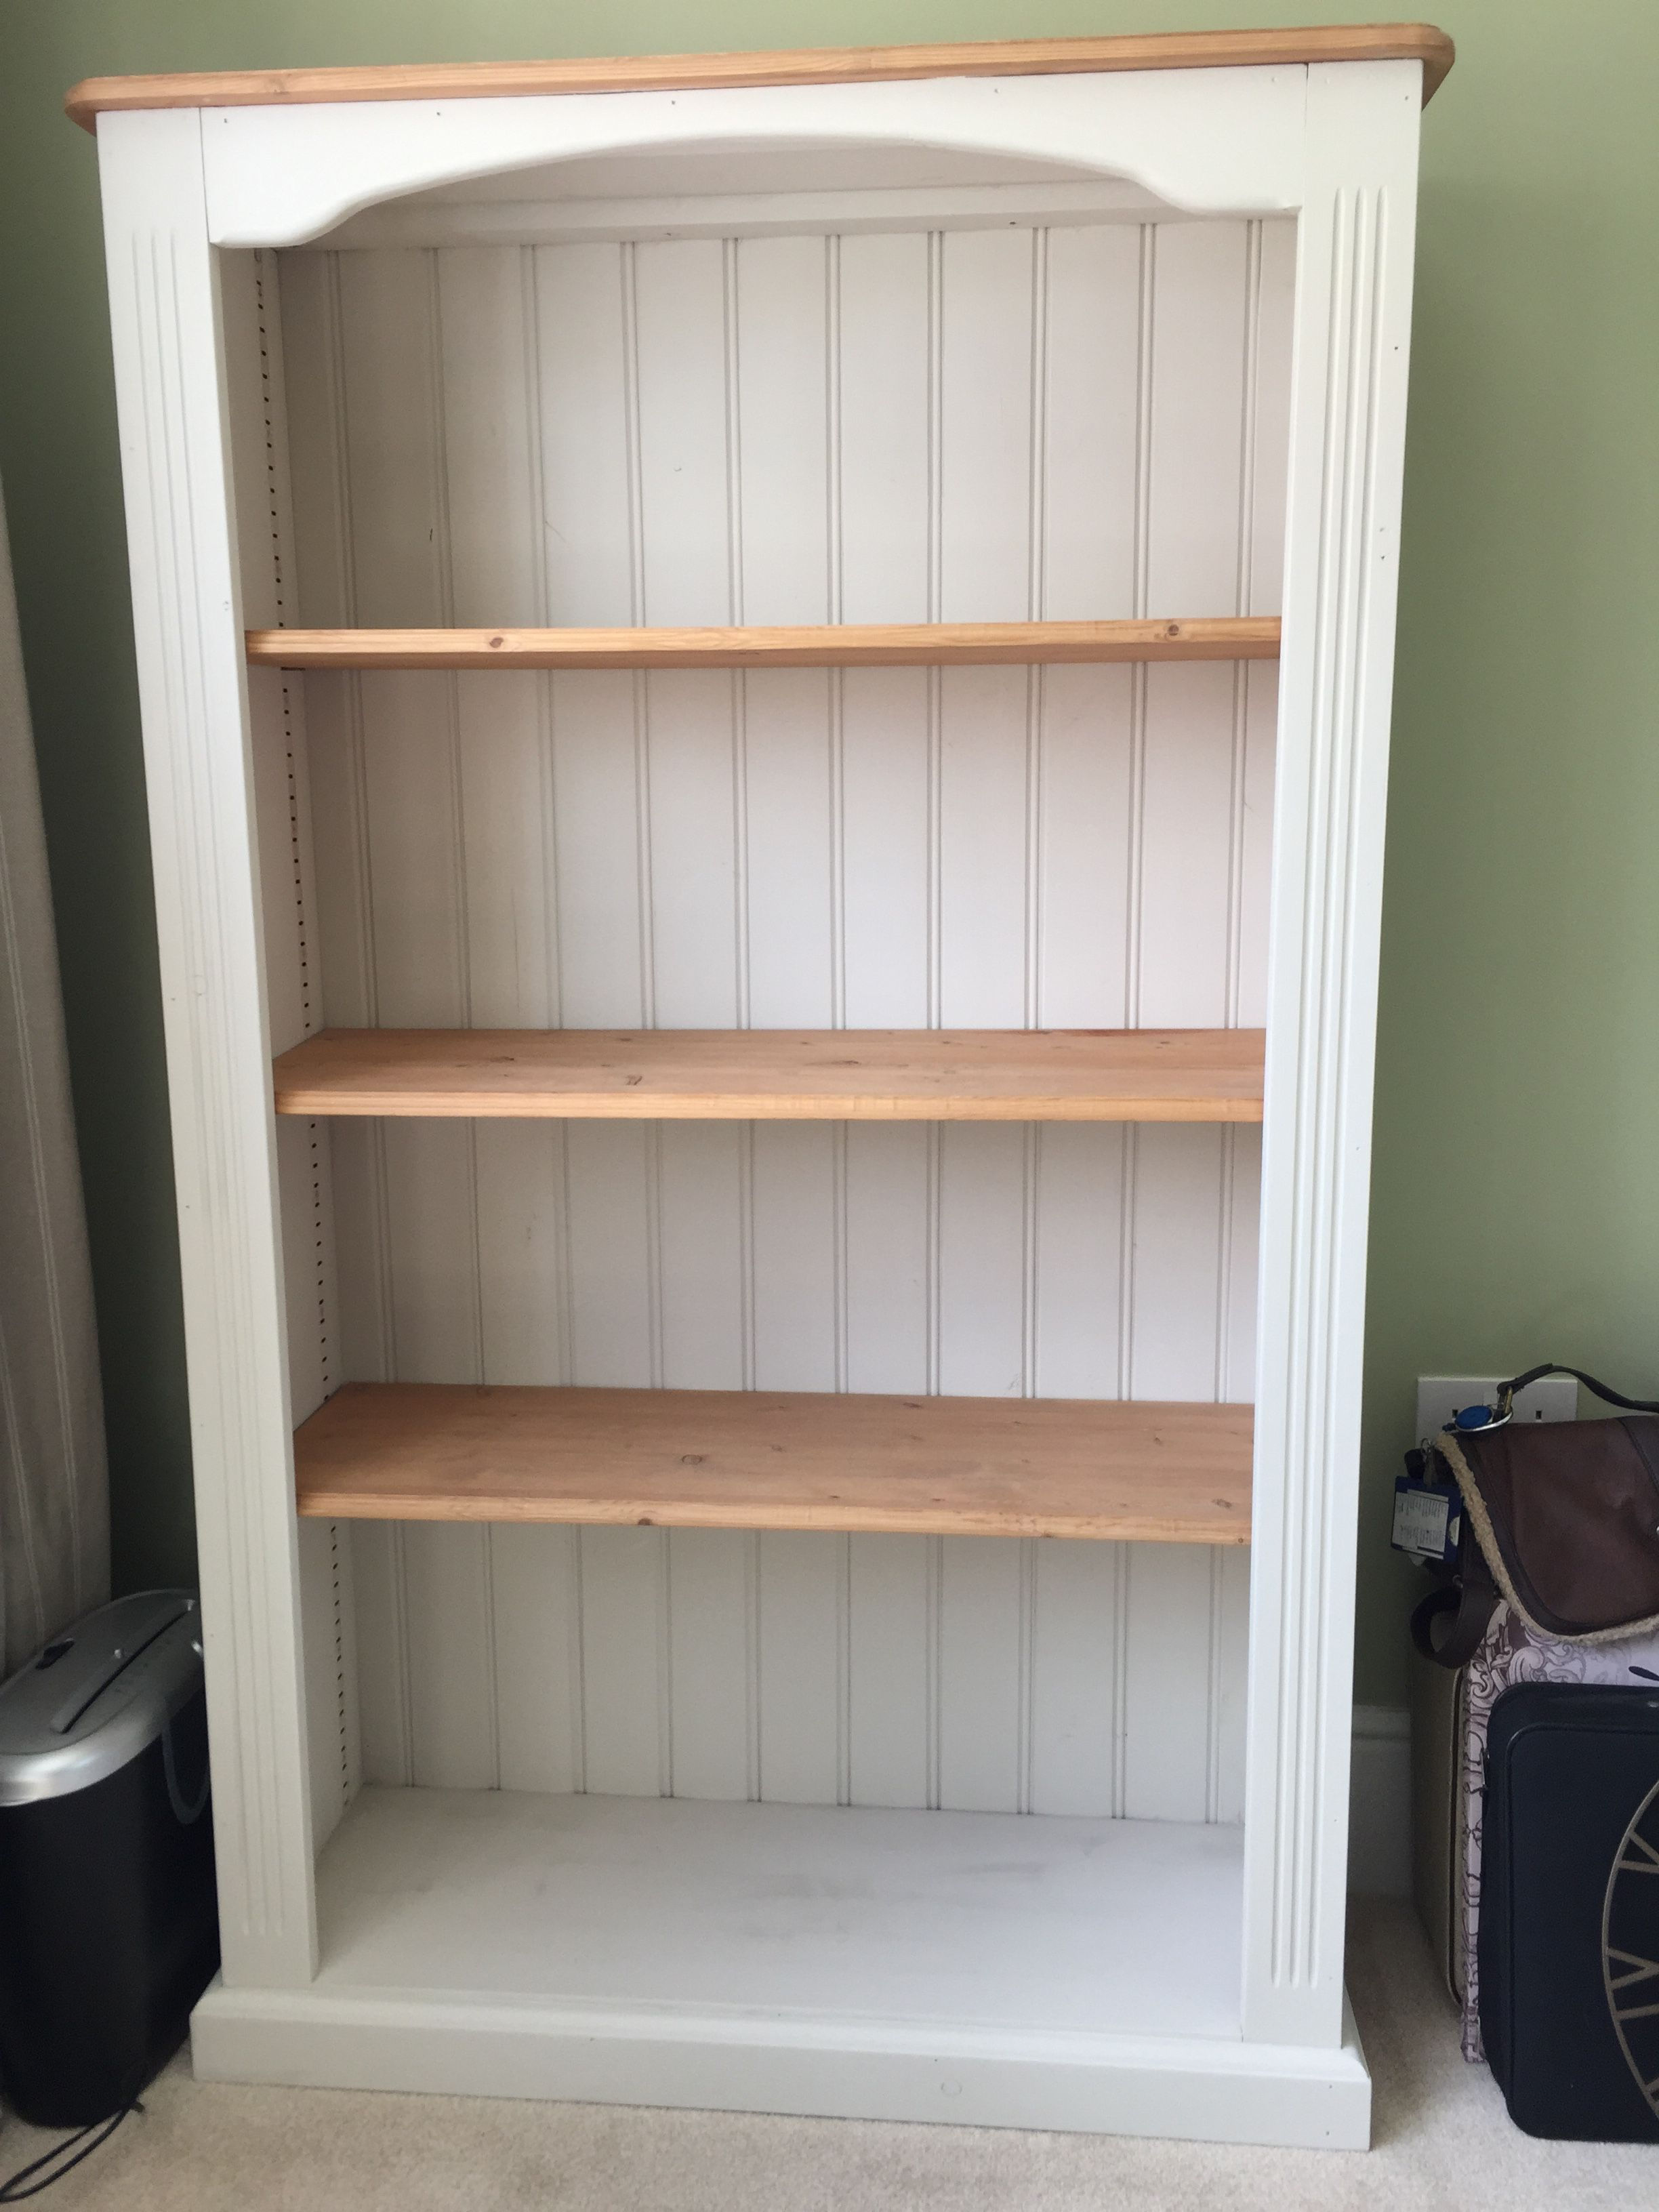 white ash rus bookcase tremendous bookshelf deep built full width rustic veneer inch wood terrific likable fascinating uncategorized pine wall satiating size gratifying open attractive brown billy of x distressed amazing awe superb bookcases pretty in inspiring